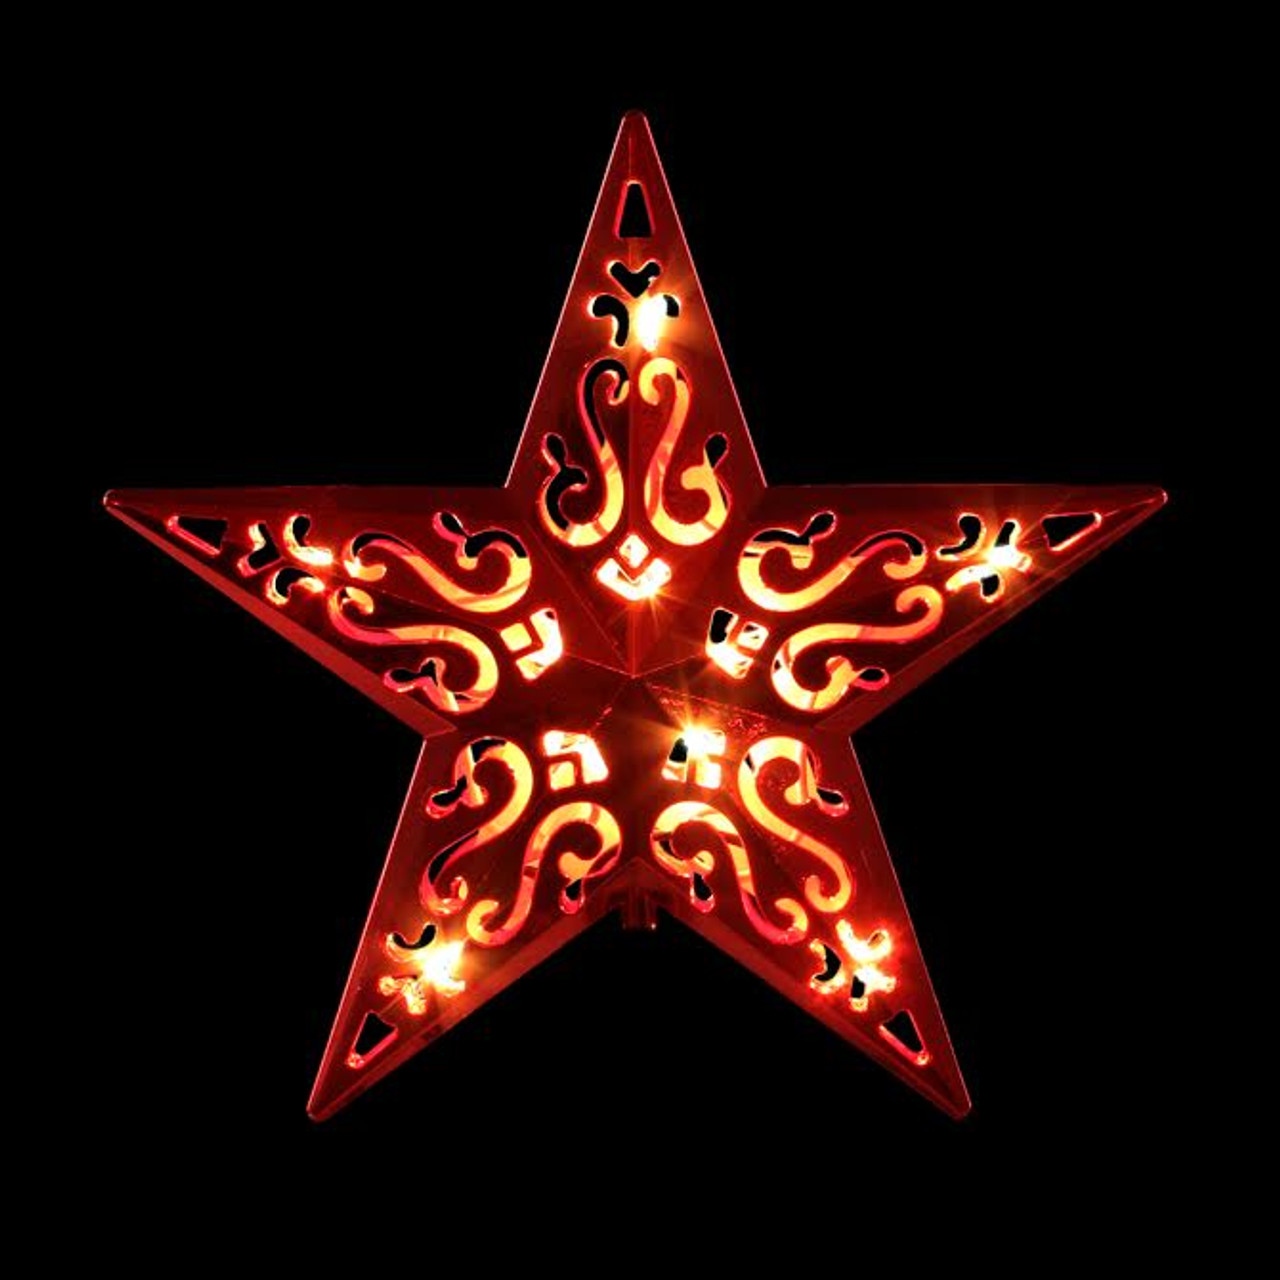 Star For A Christmas Tree: 8 Lighted Red Cut-Out Design Decorative Star Christmas